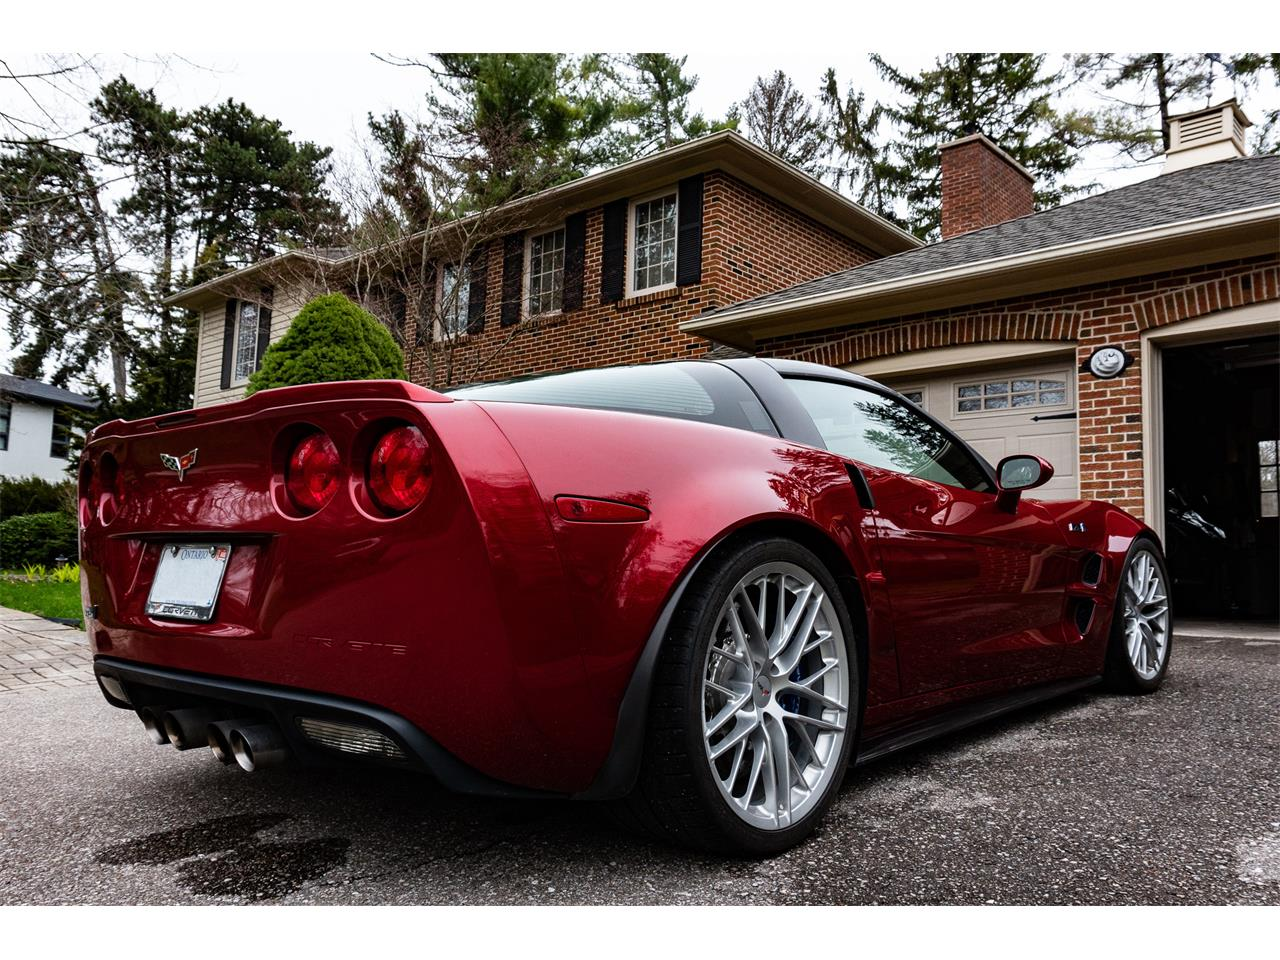 2010 Chevrolet Corvette ZR1 (CC-1214308) for sale in Toronto, Ontario